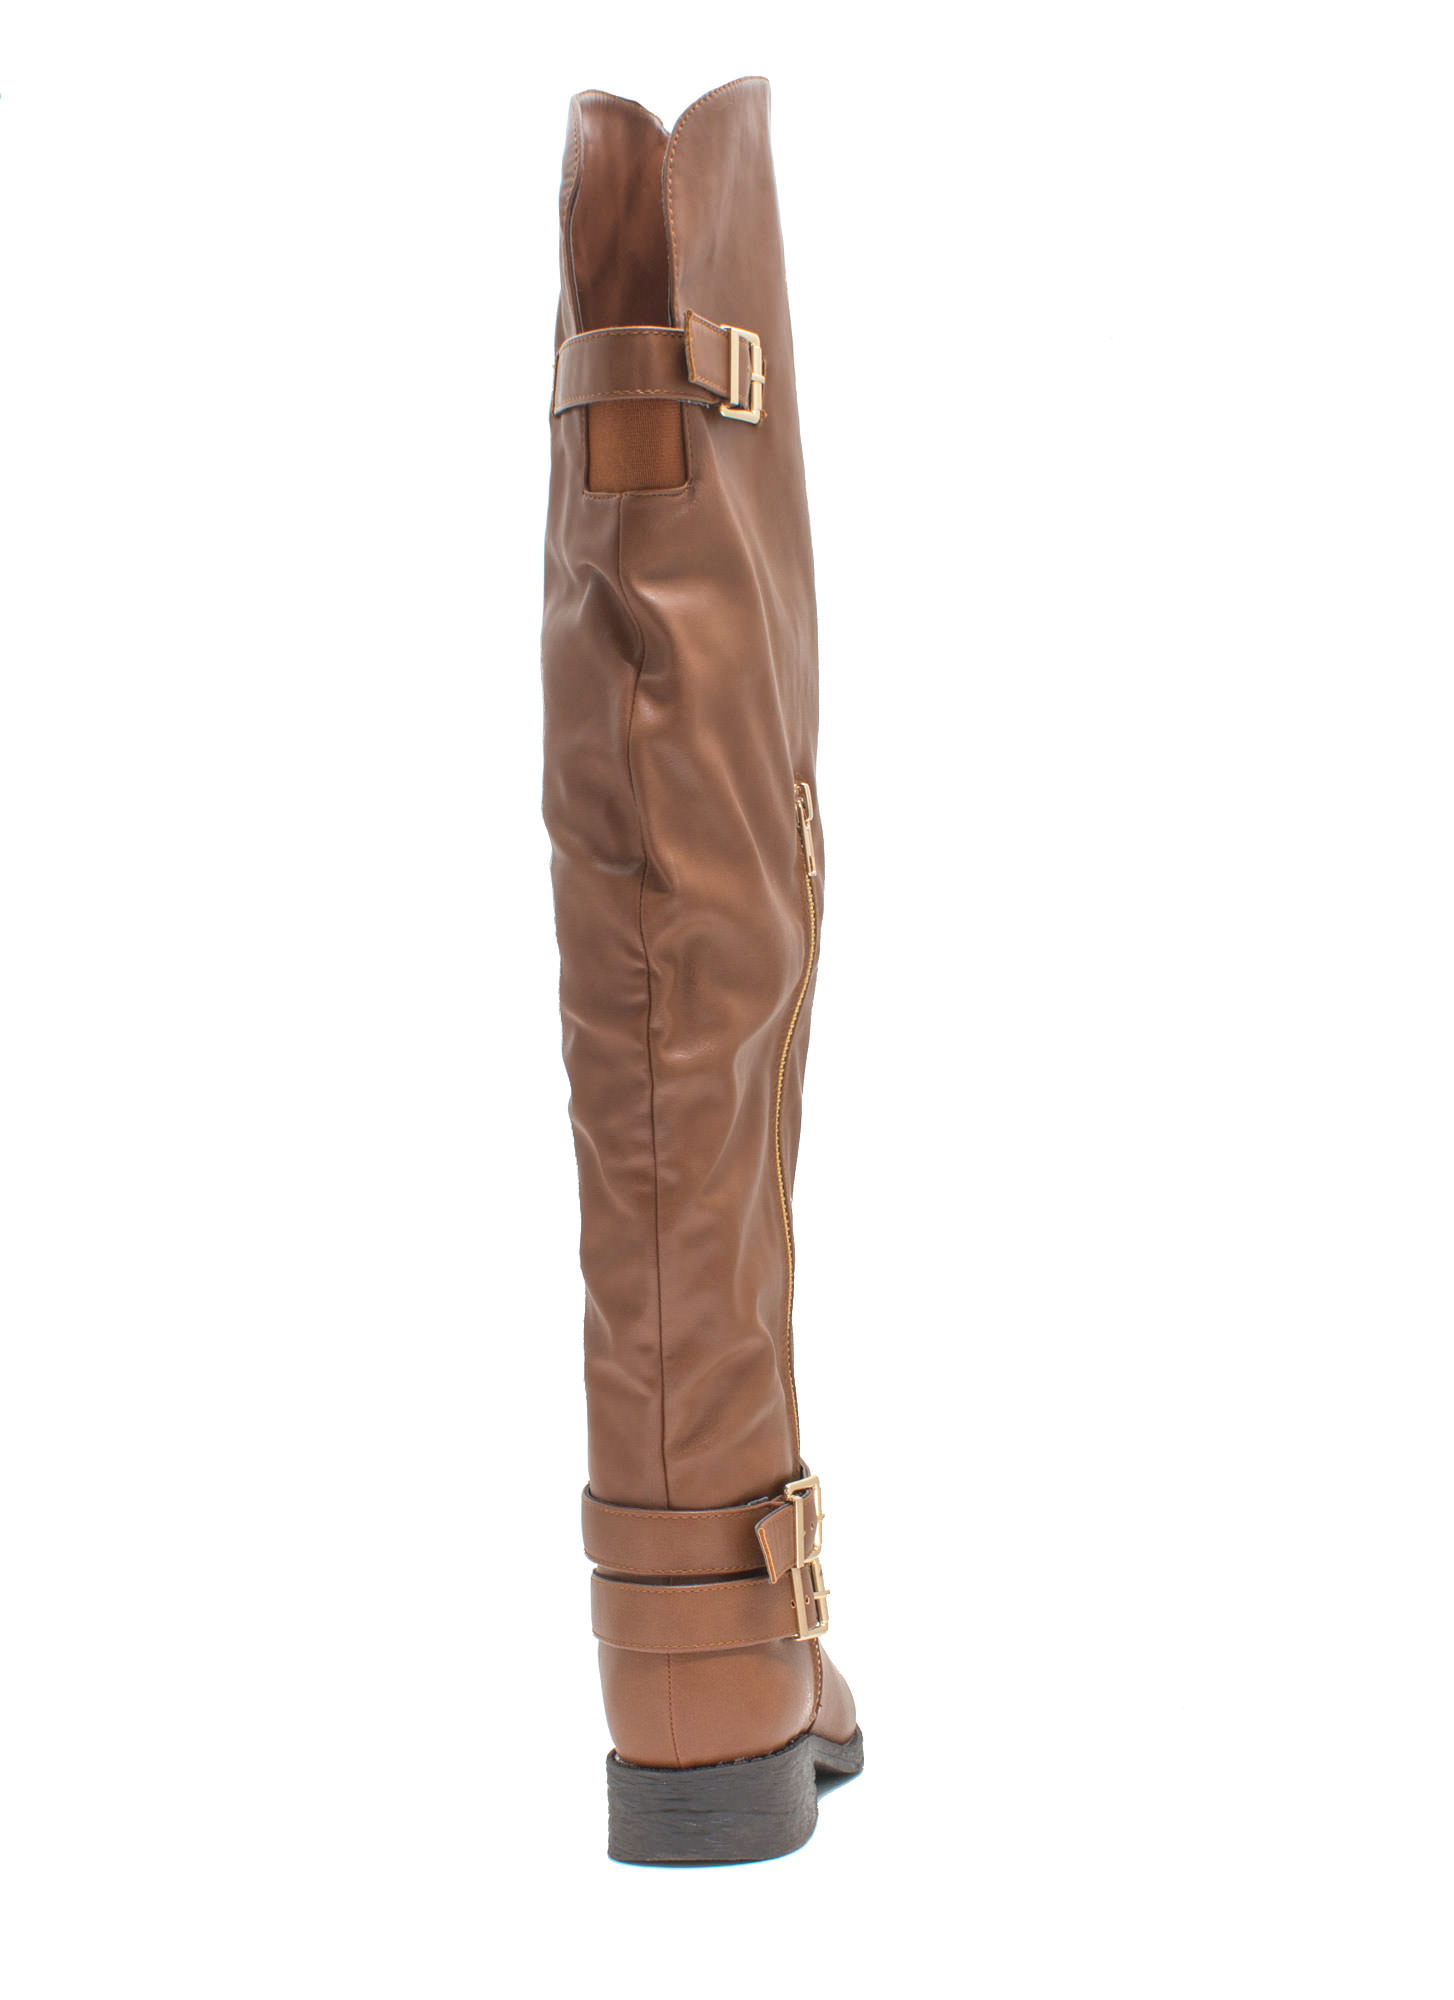 Quest 4 Chic Over-The-Knee Boots CHESTNUT